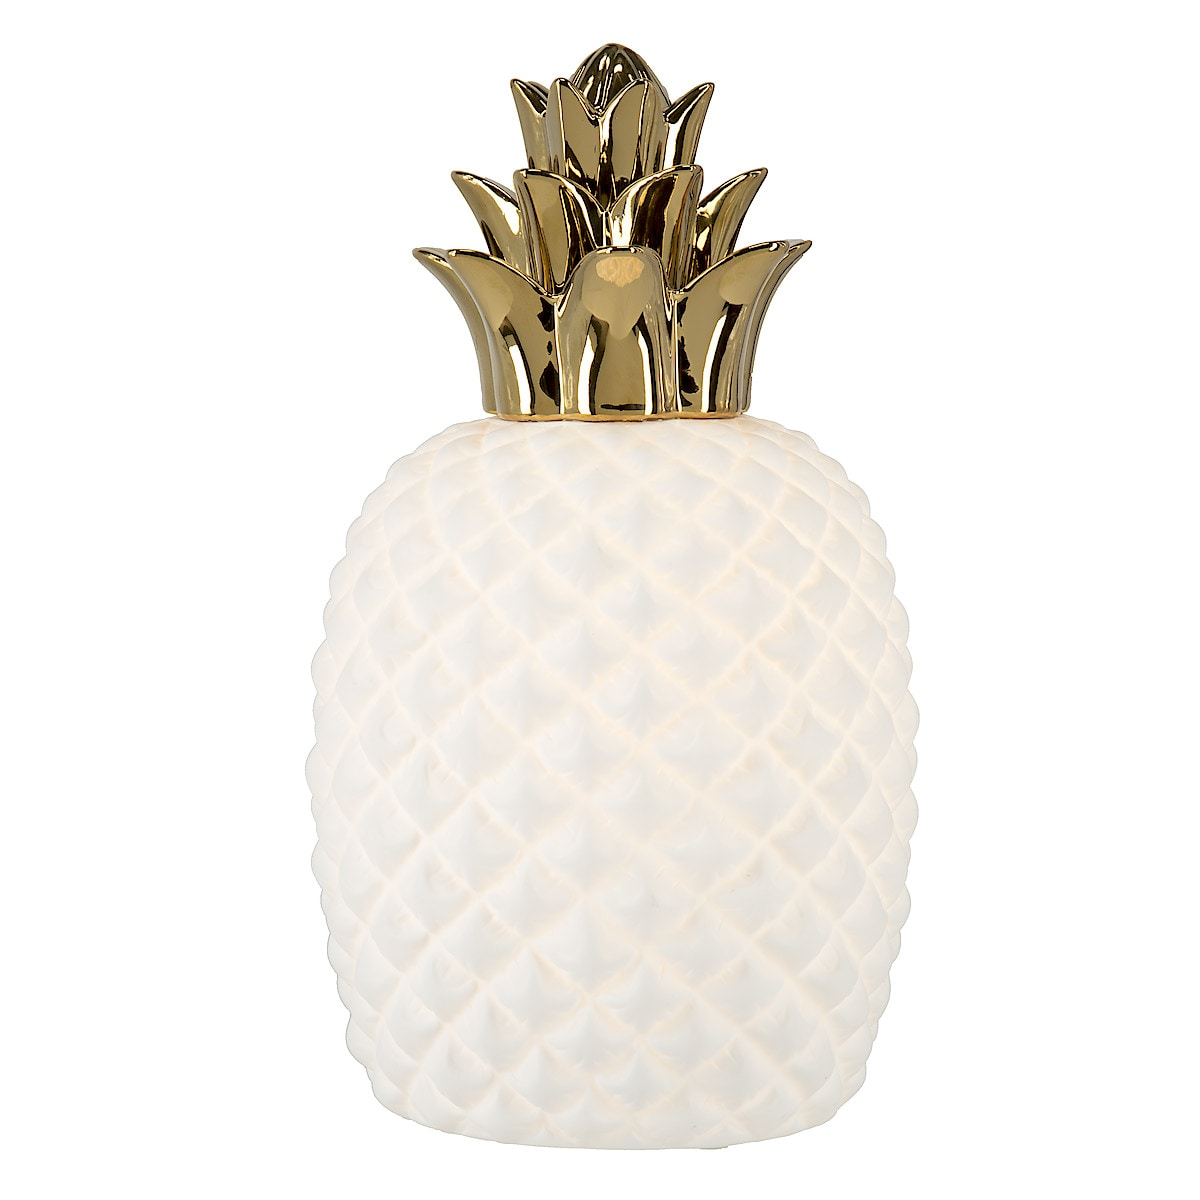 Bordslampa Ananas i porslin, Northlight | Clas Ohlson